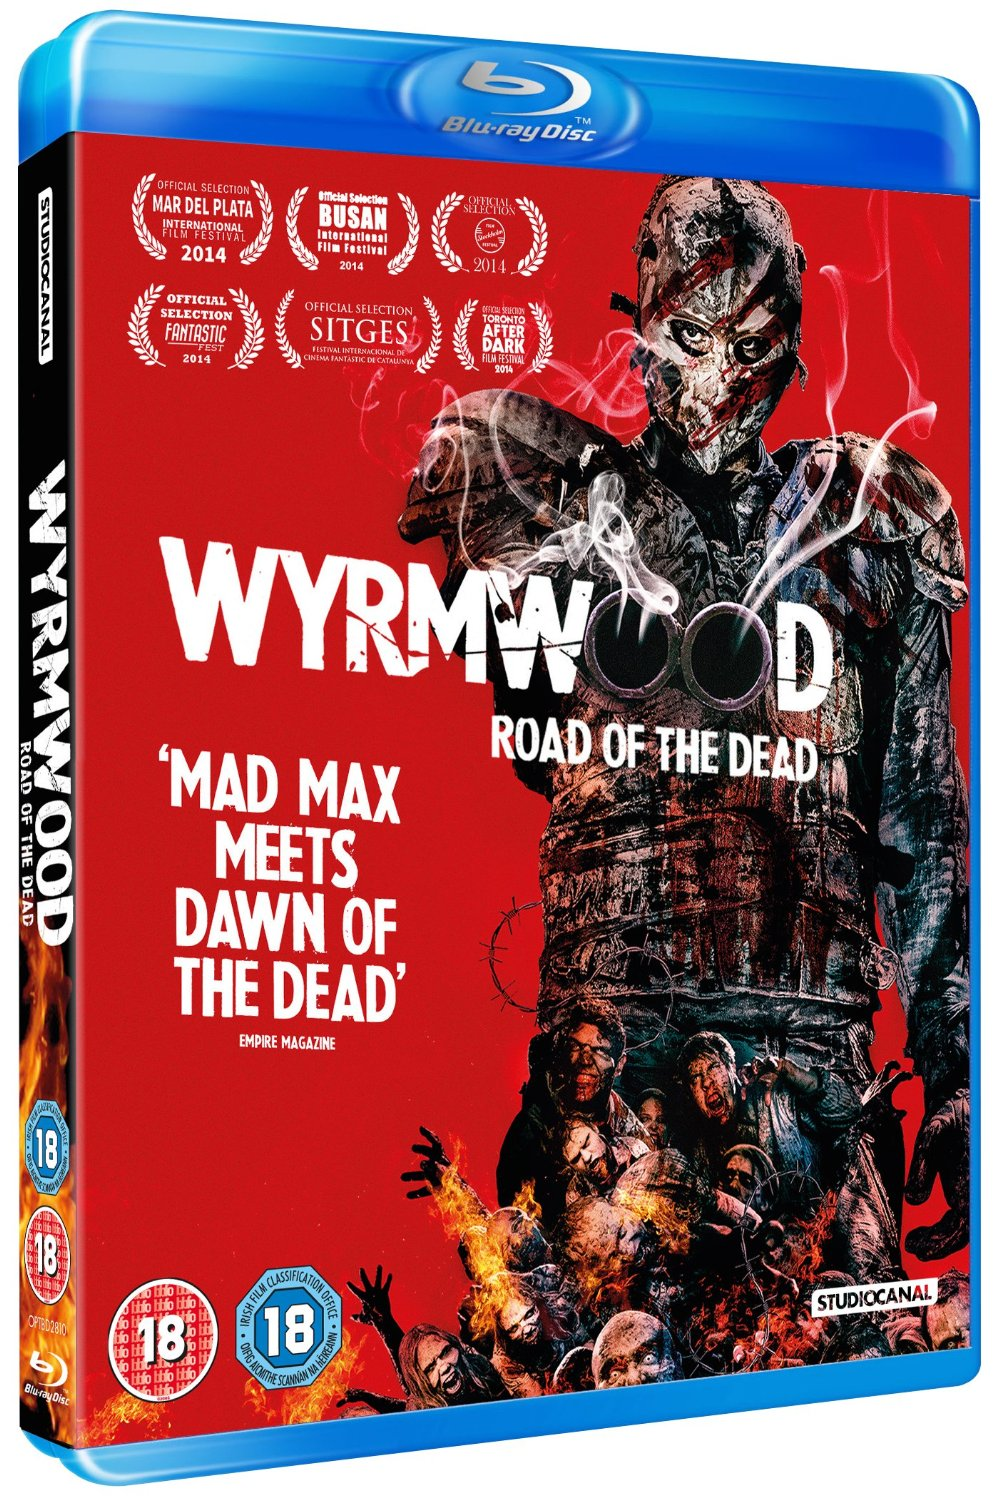 Wyrmwood Blu-ray review: full-throttle zombie gem